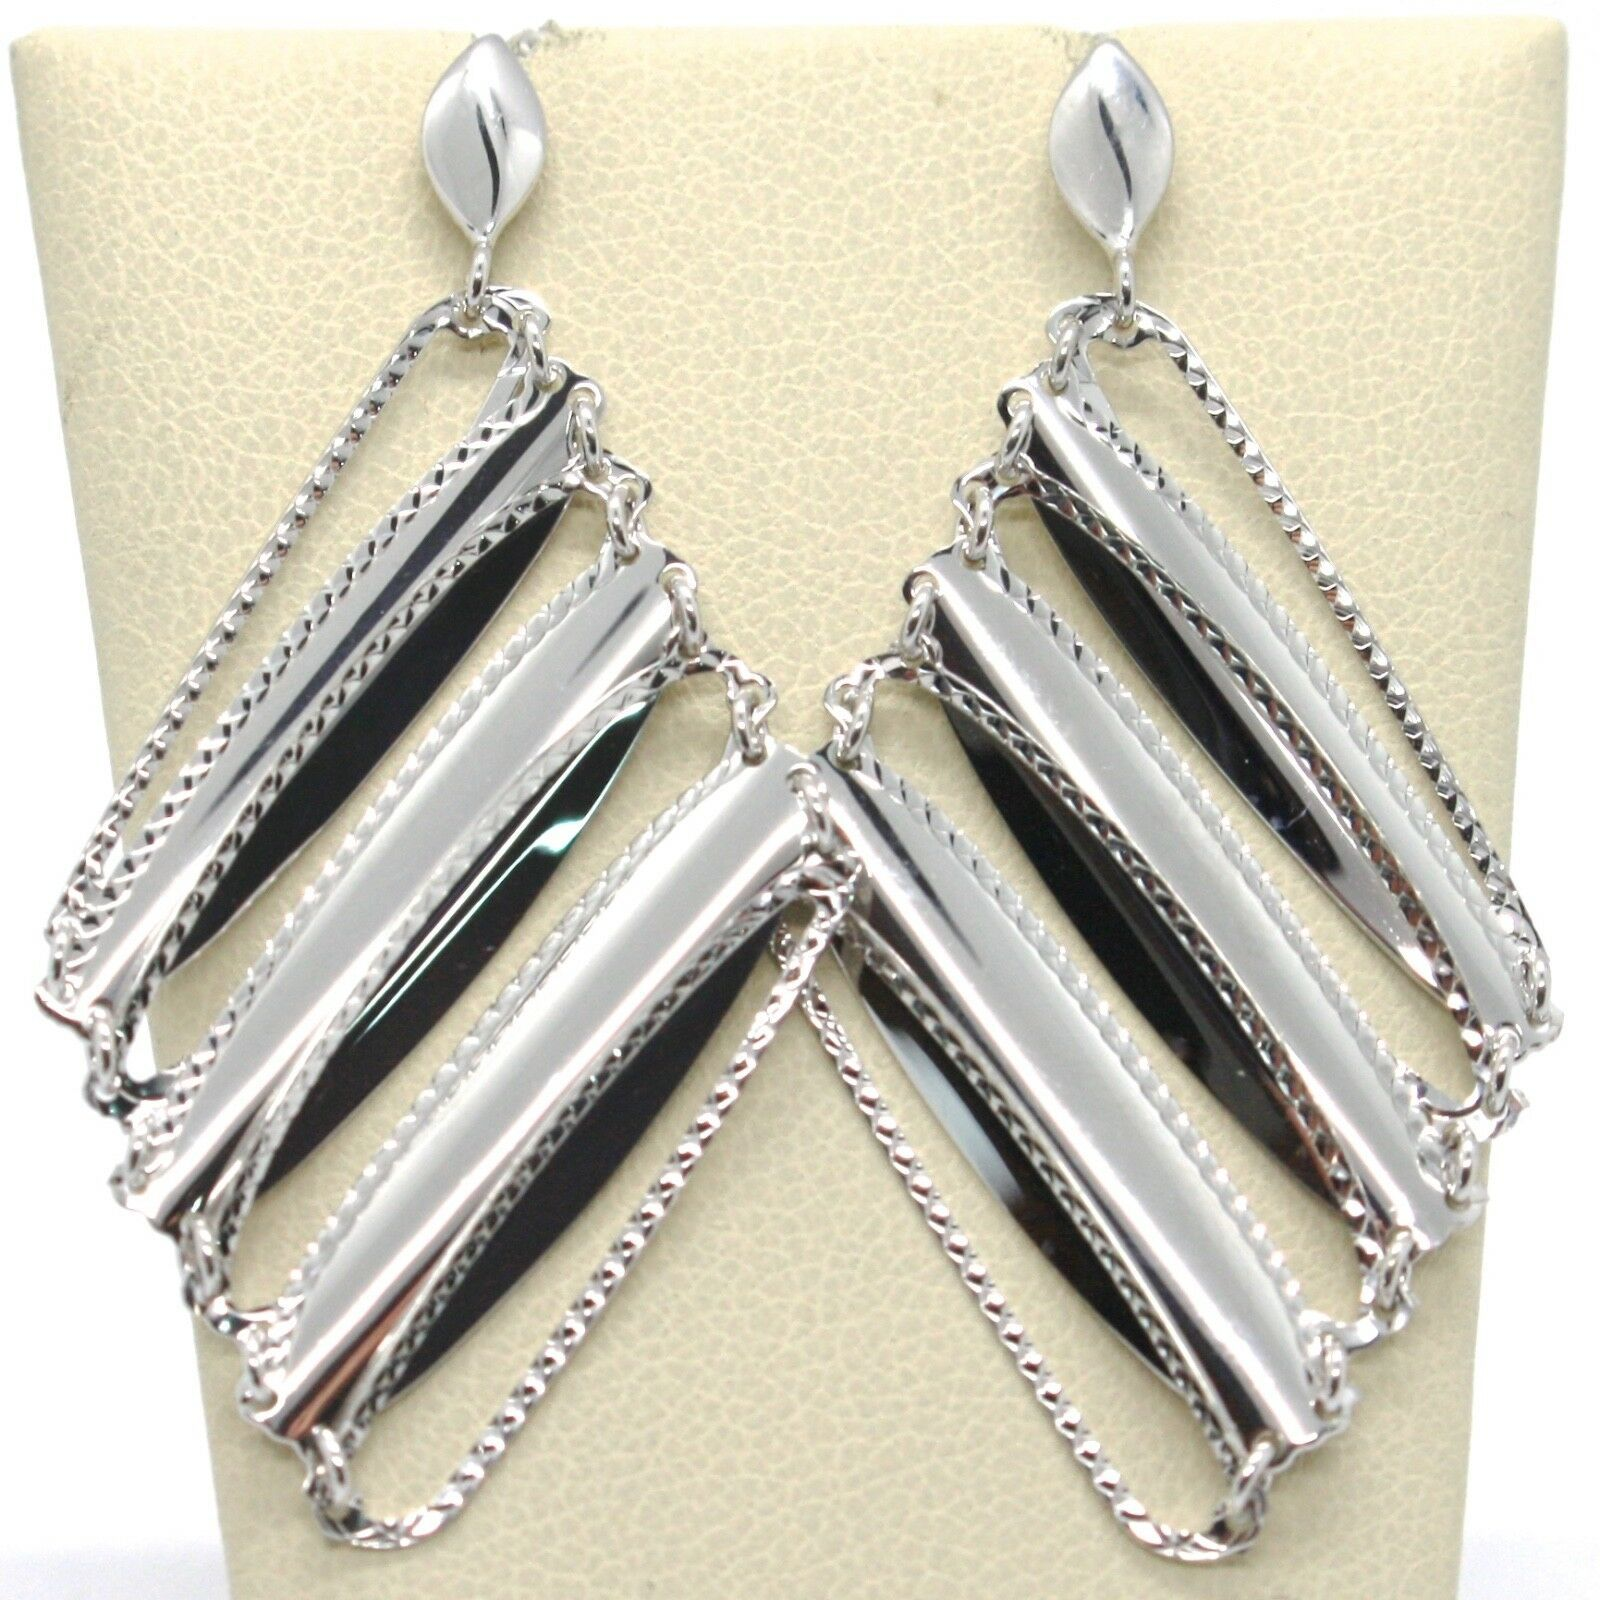 SOLID 18K WHITE GOLD LONG PENDANT EARRINGS WITH WORKED RHOMBUS, MADE IN ITALY